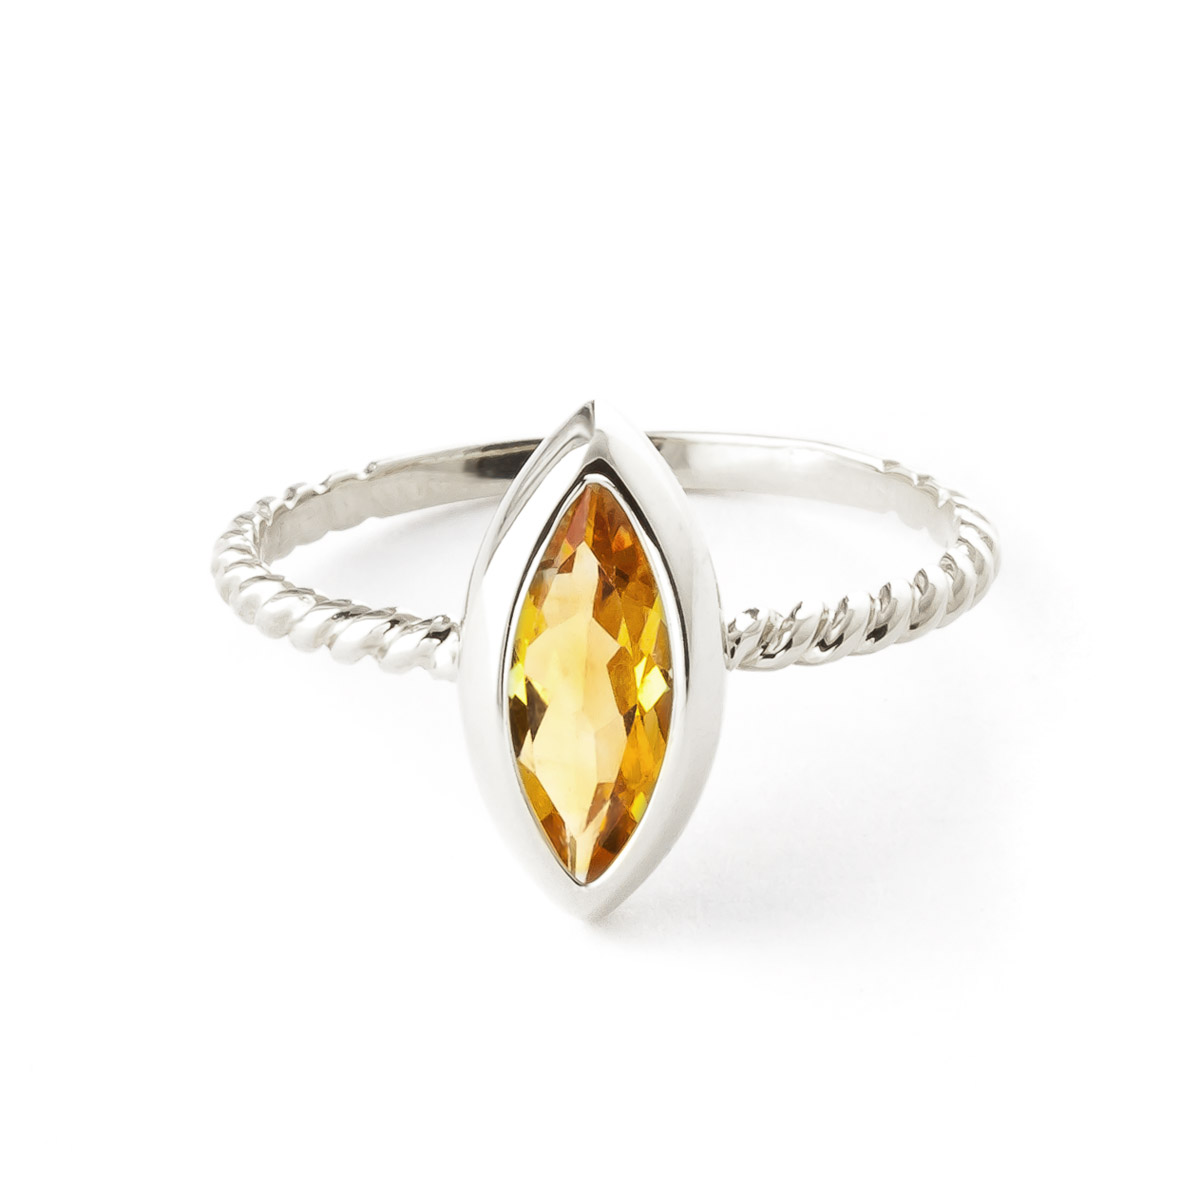 Marquise Cut Citrine Ring 1.7 ct in 9ct White Gold